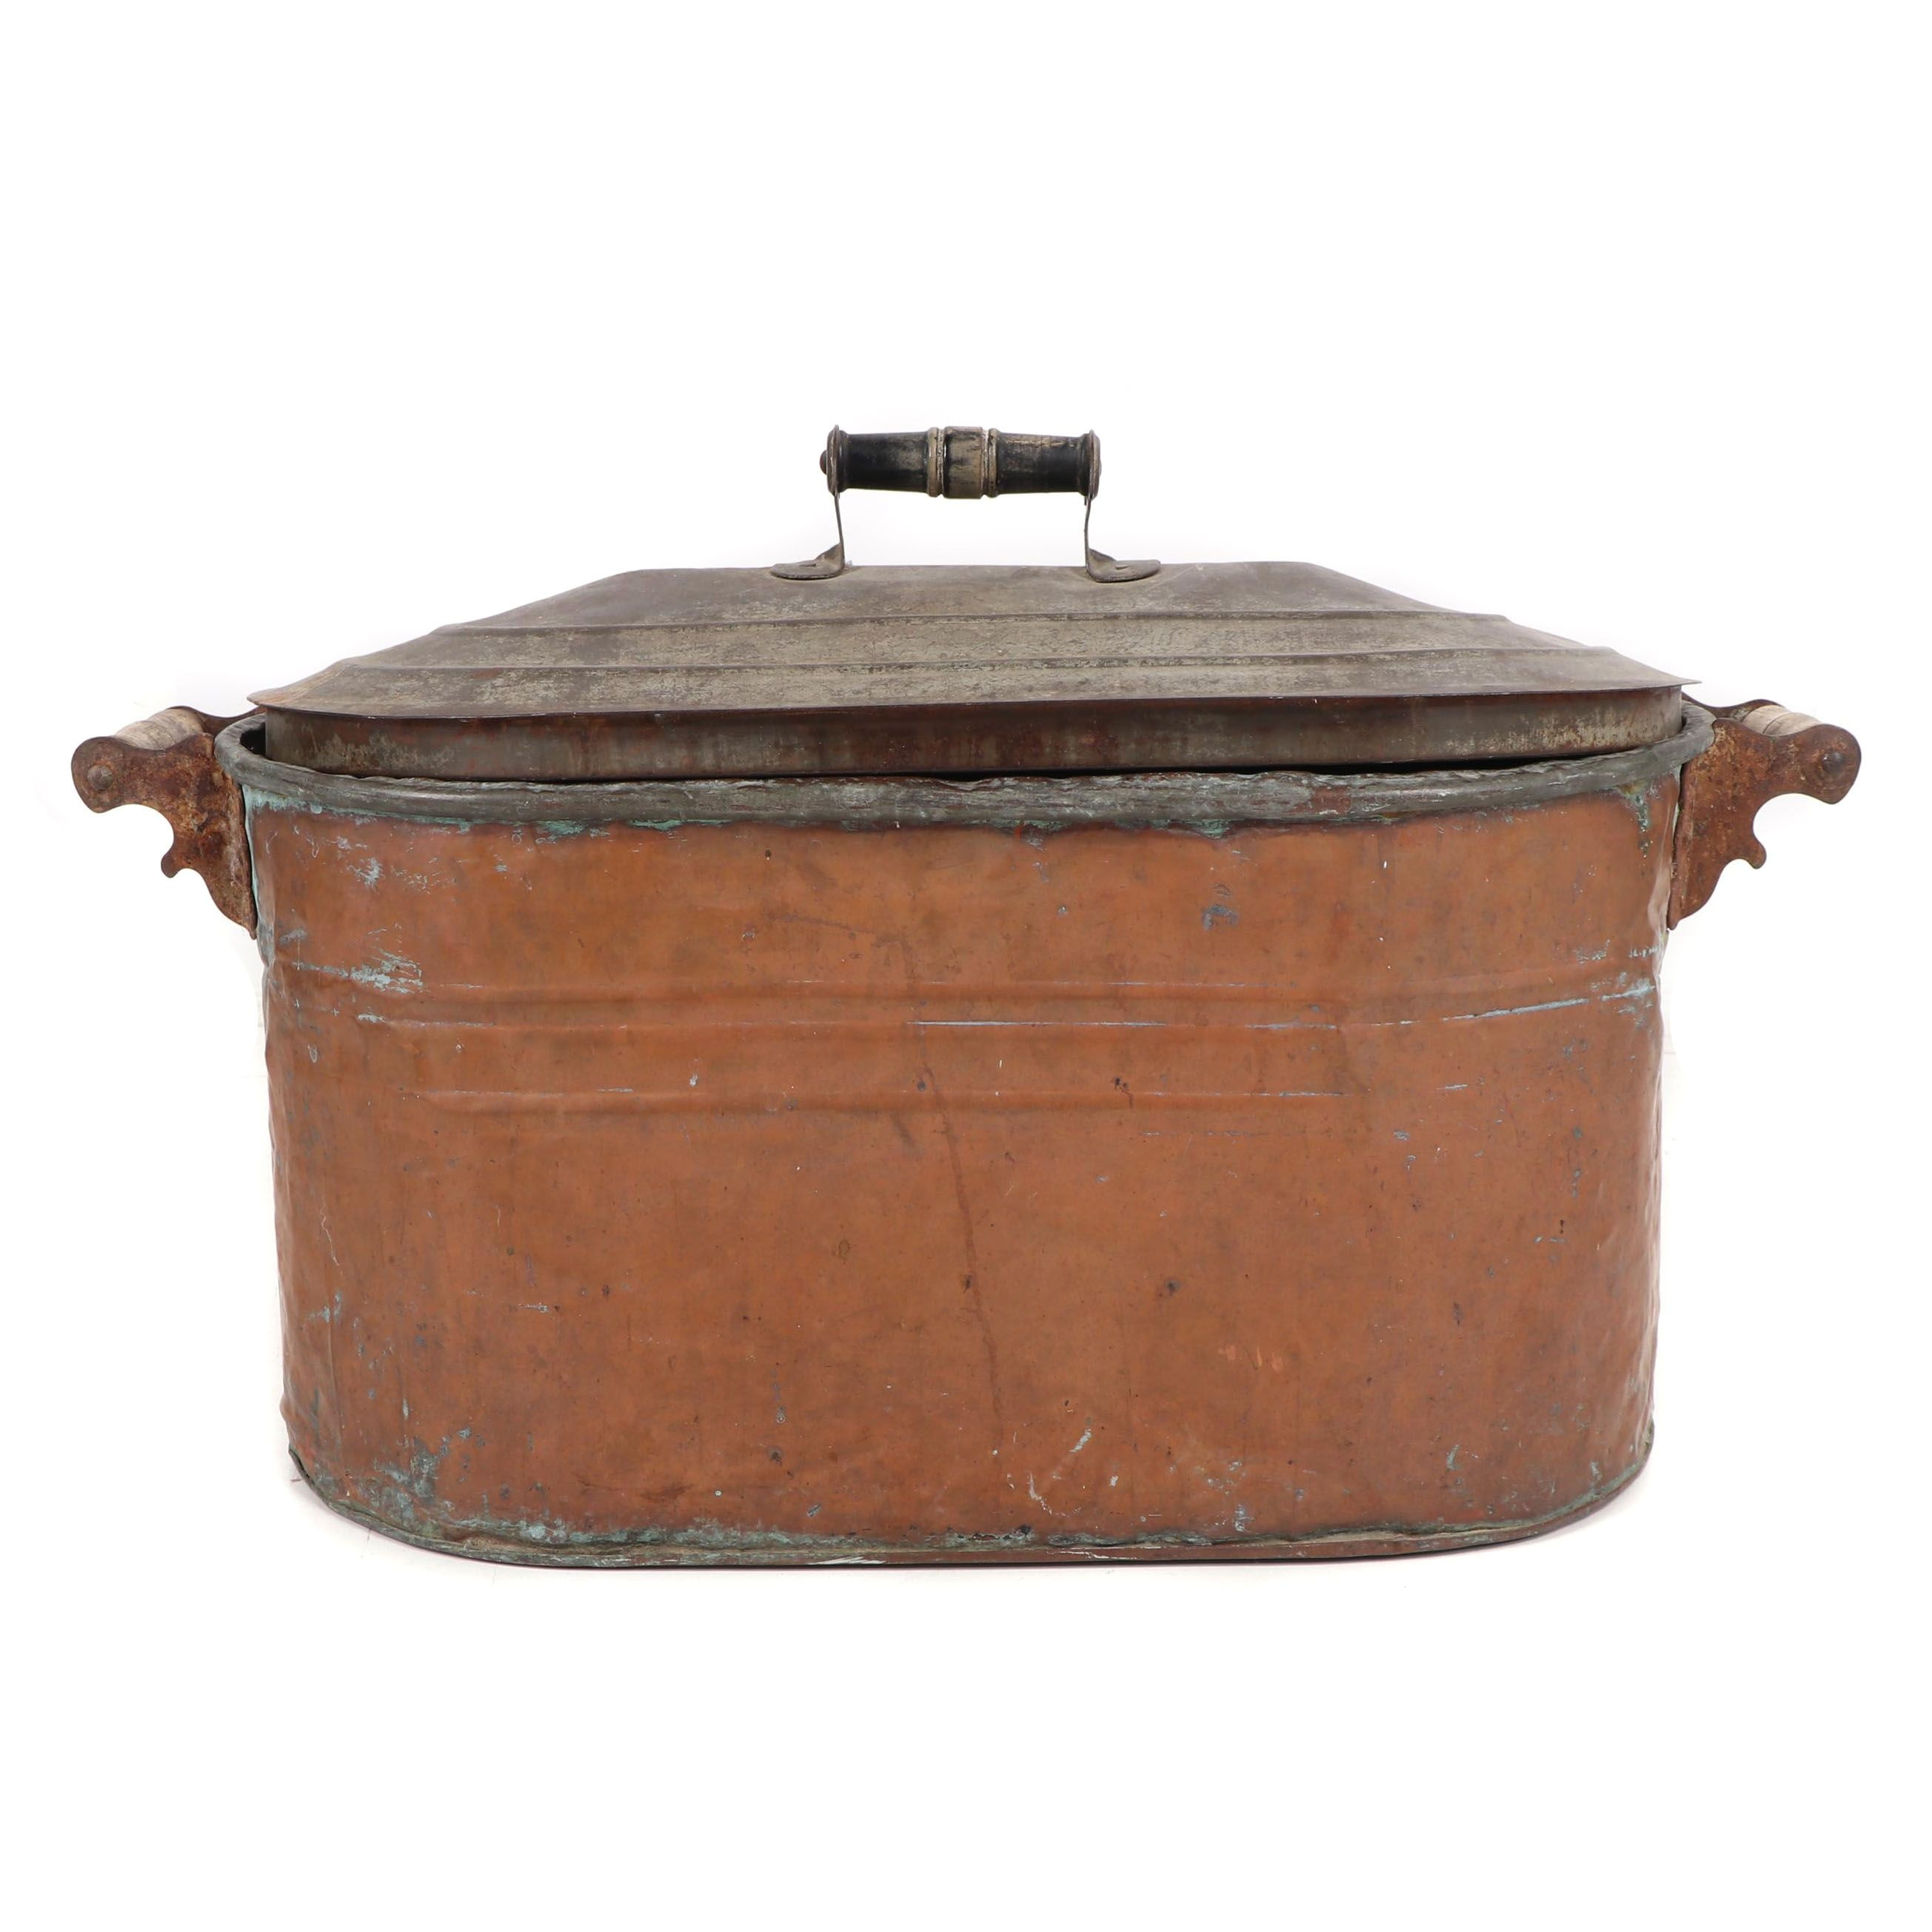 Lidded Copper Boiler, Late 19th to Early 20th Century